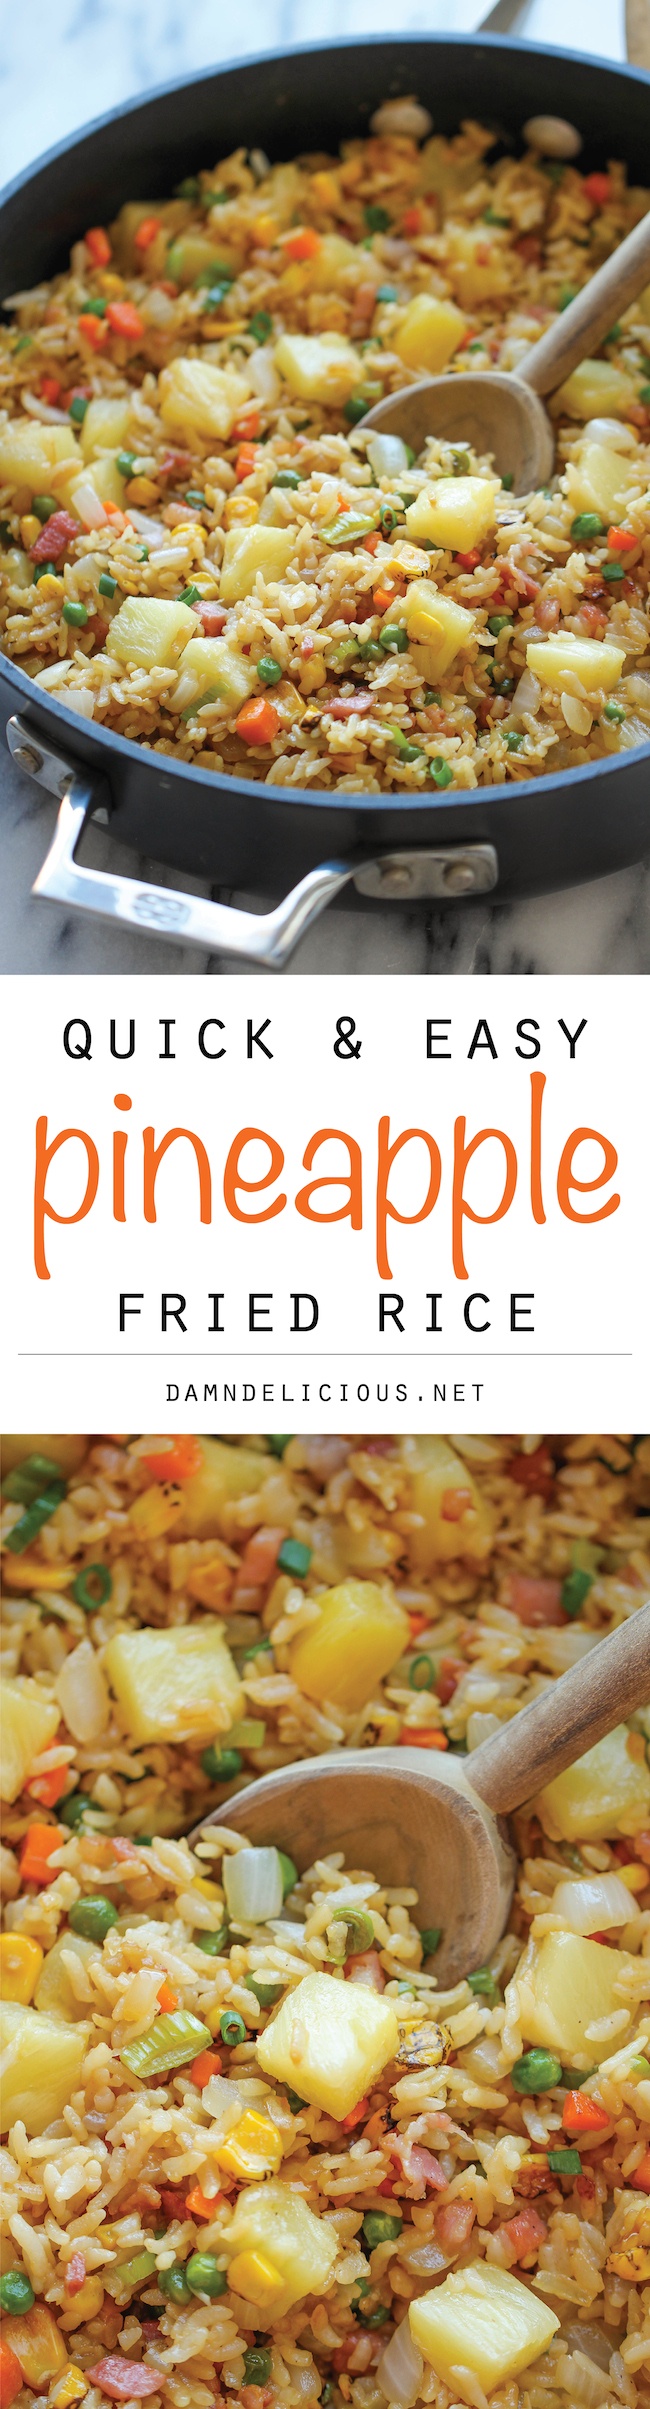 Pineapple Fried Rice - A quick and easy weeknight meal that's so much ...